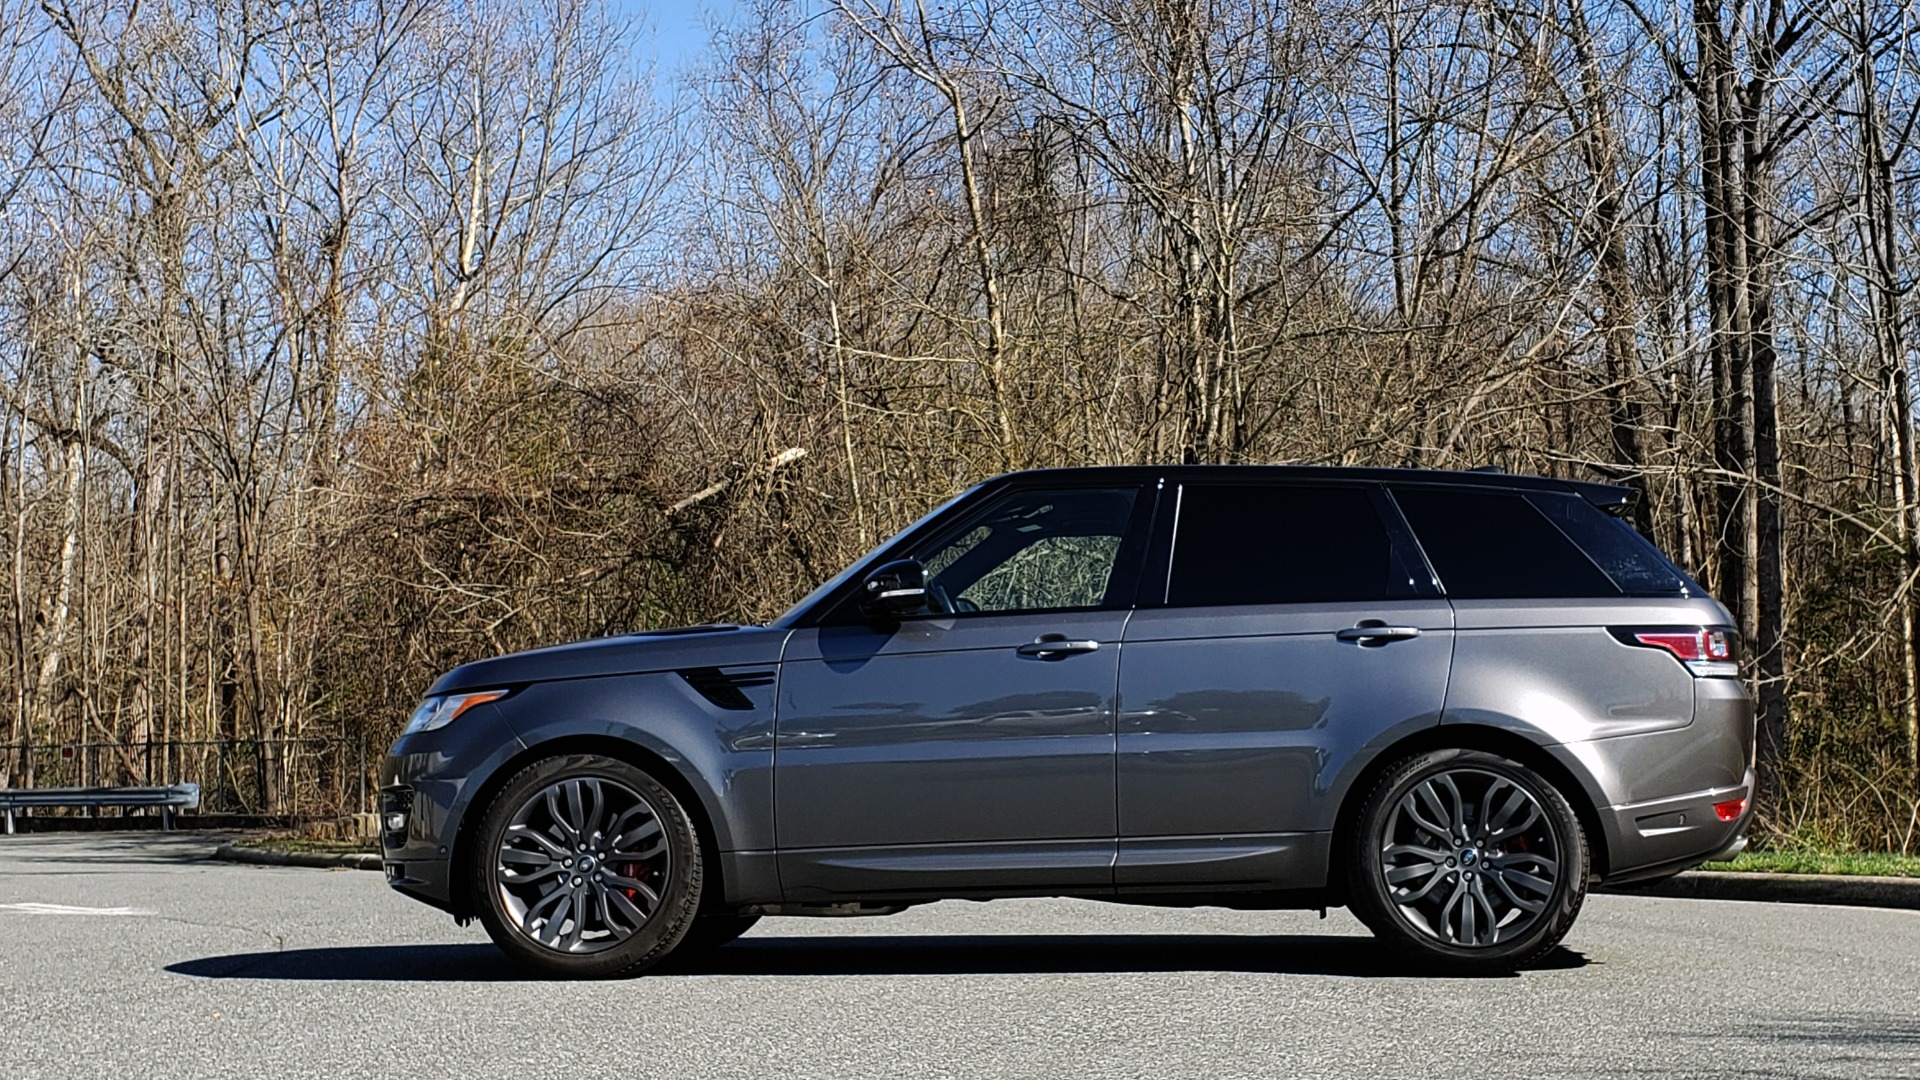 Used 2017 Land Rover RANGE ROVER SPORT HSE DYNAMIC / NAV / SUNROOF / REARVIEW for sale Sold at Formula Imports in Charlotte NC 28227 2